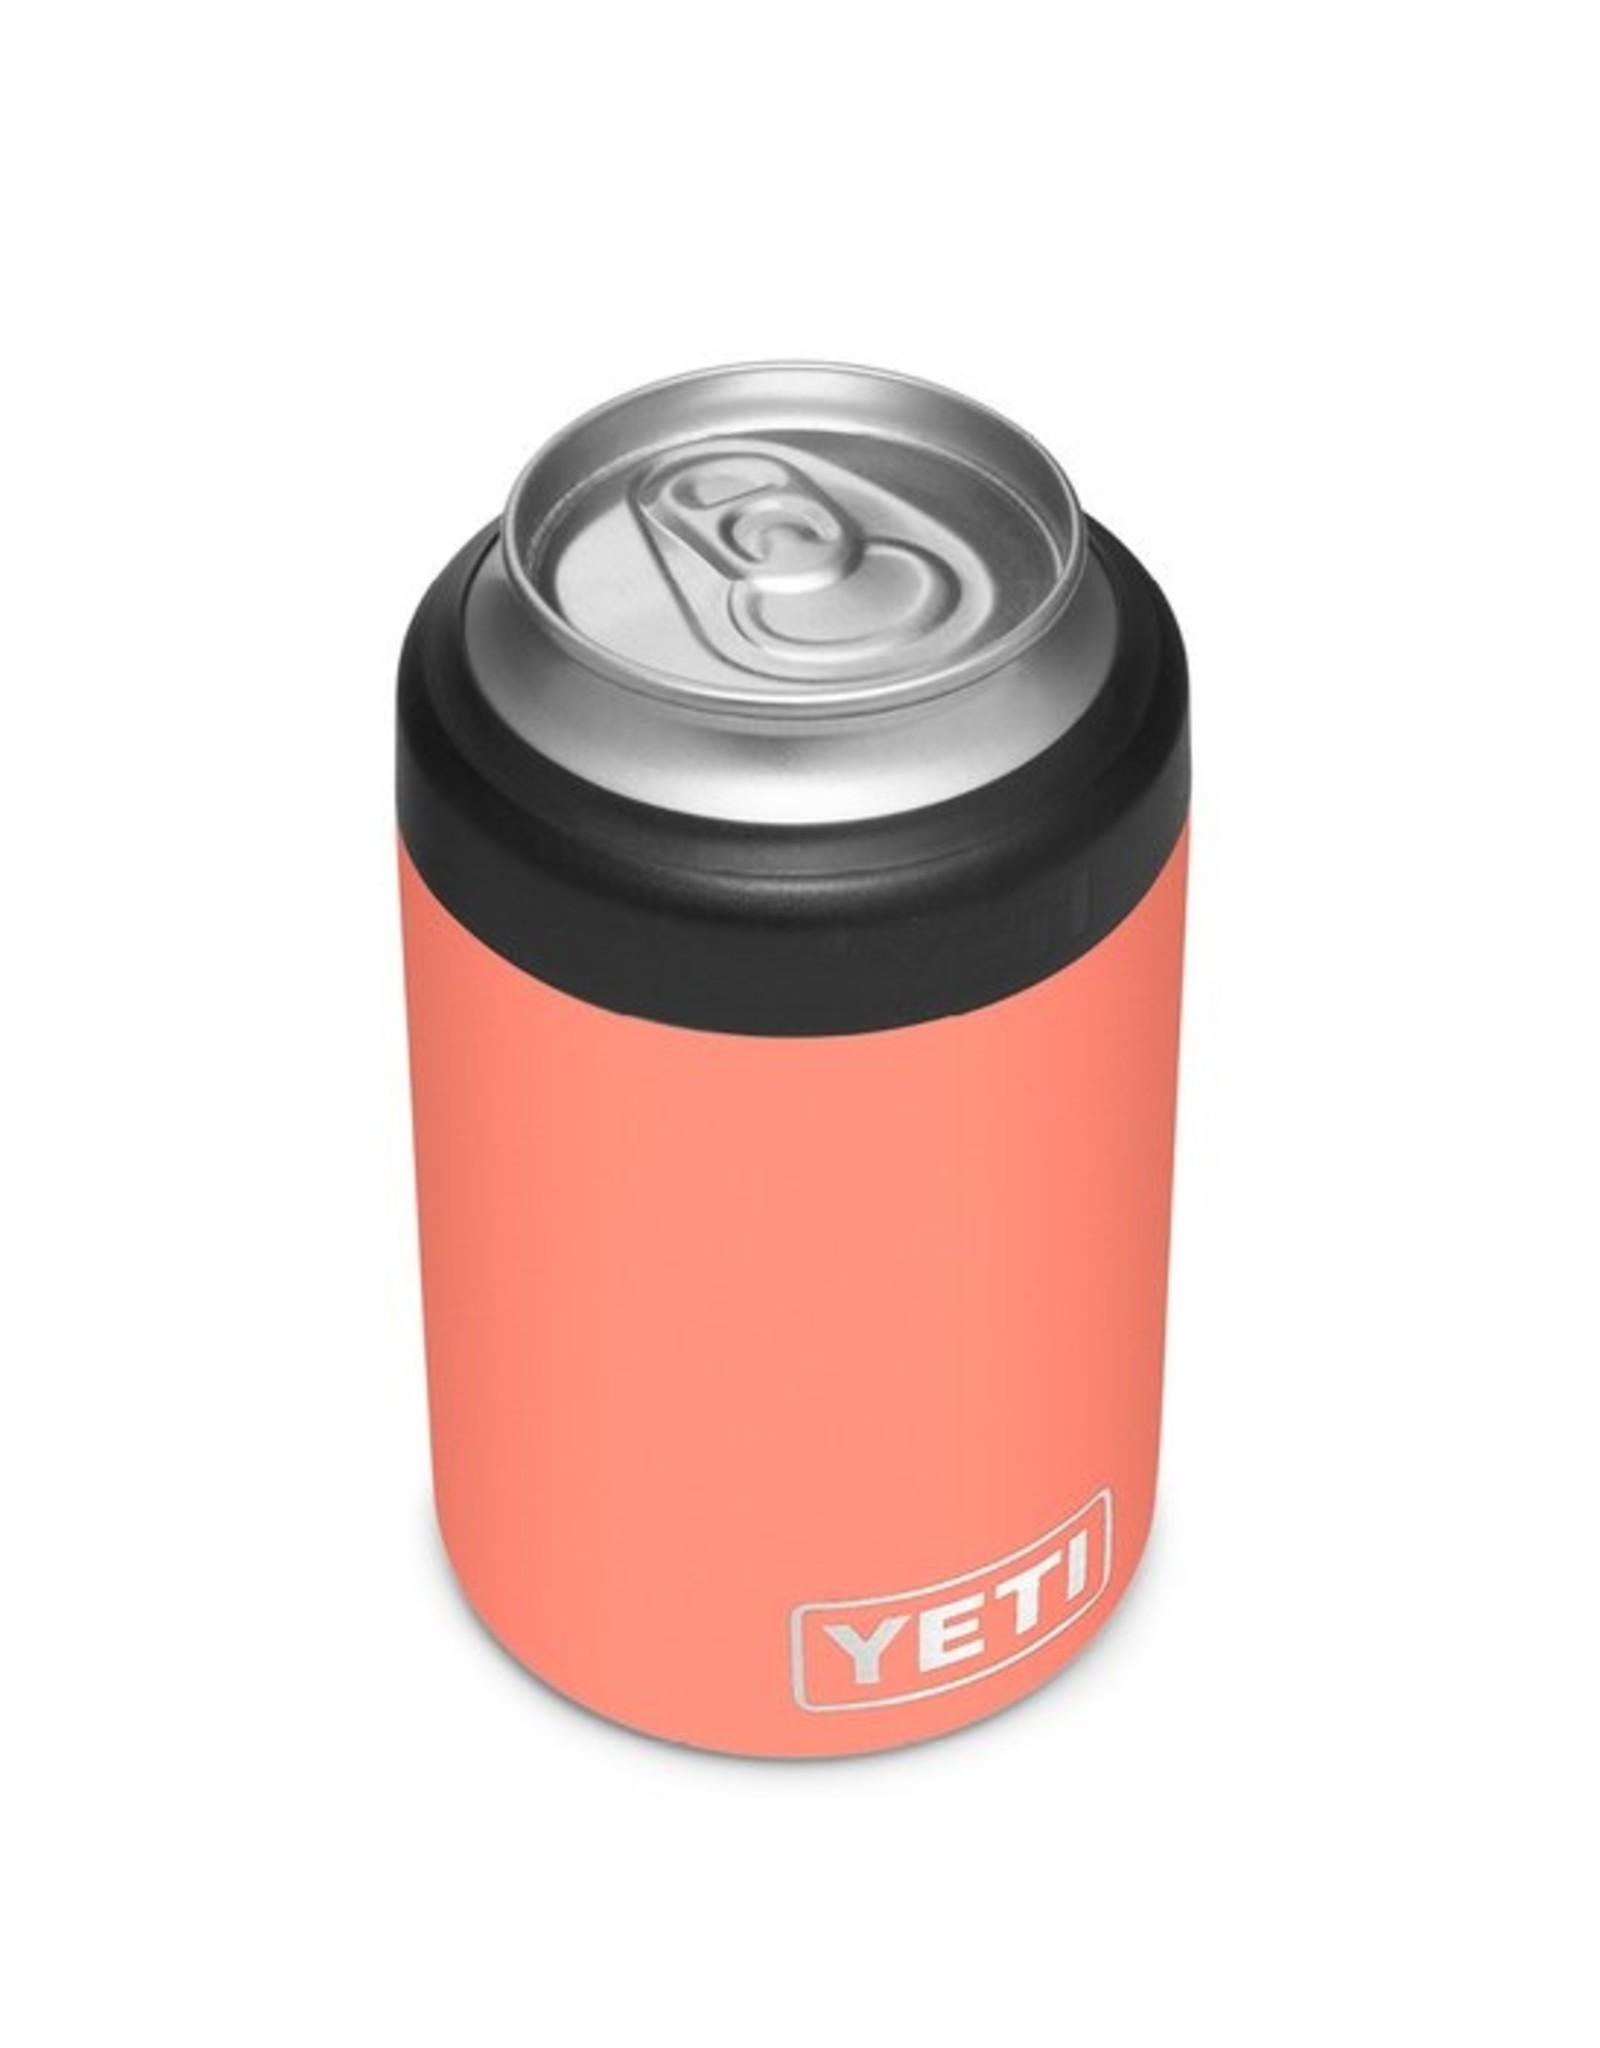 YETI Coolers  Colster 2.0 - Coral